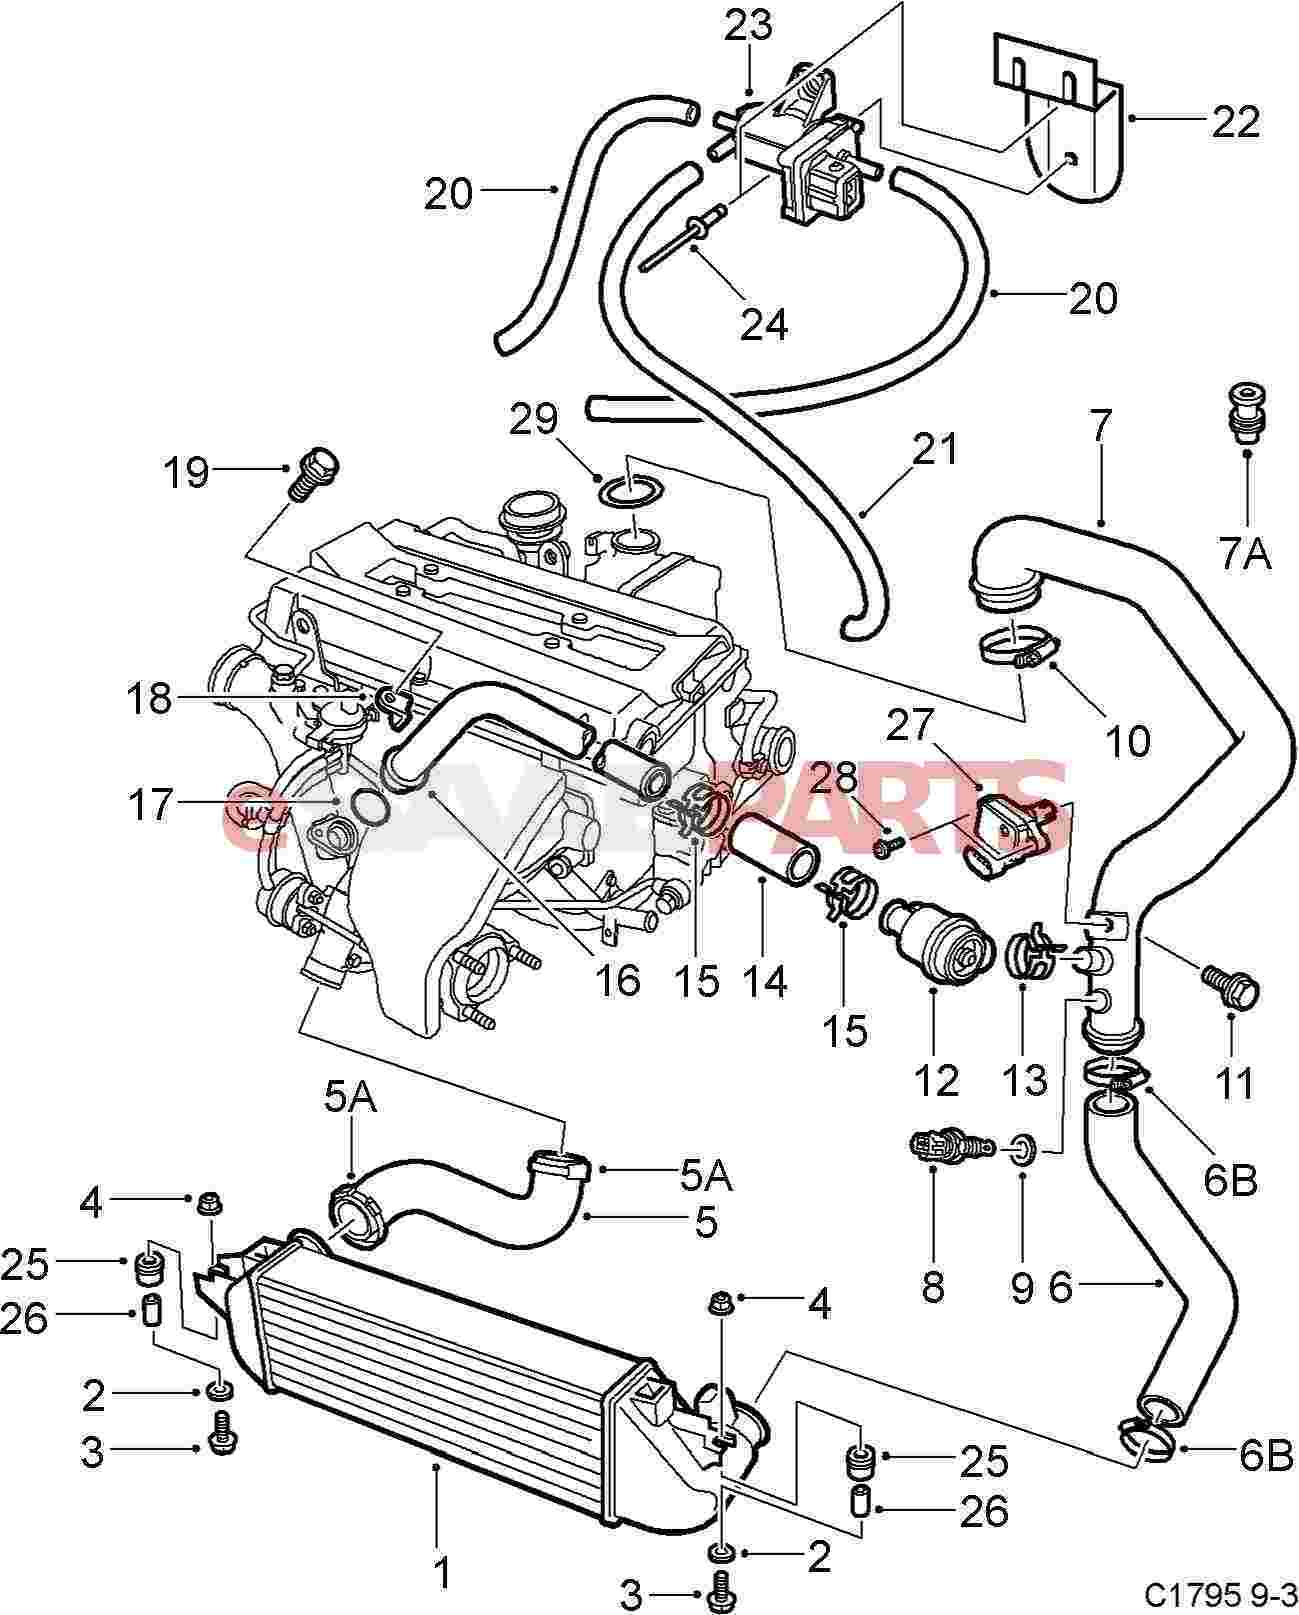 Chevy Nova Hei Wiring as well 00 Saab 9 3 Convertible Body Parts besides Showthread also 2003 Saab 9 3 Convertible Wiring Diagram as well Saab 9 3 Intercooler Diagram Saab Free Engine Image For User Manual. on saab 9 3 arc